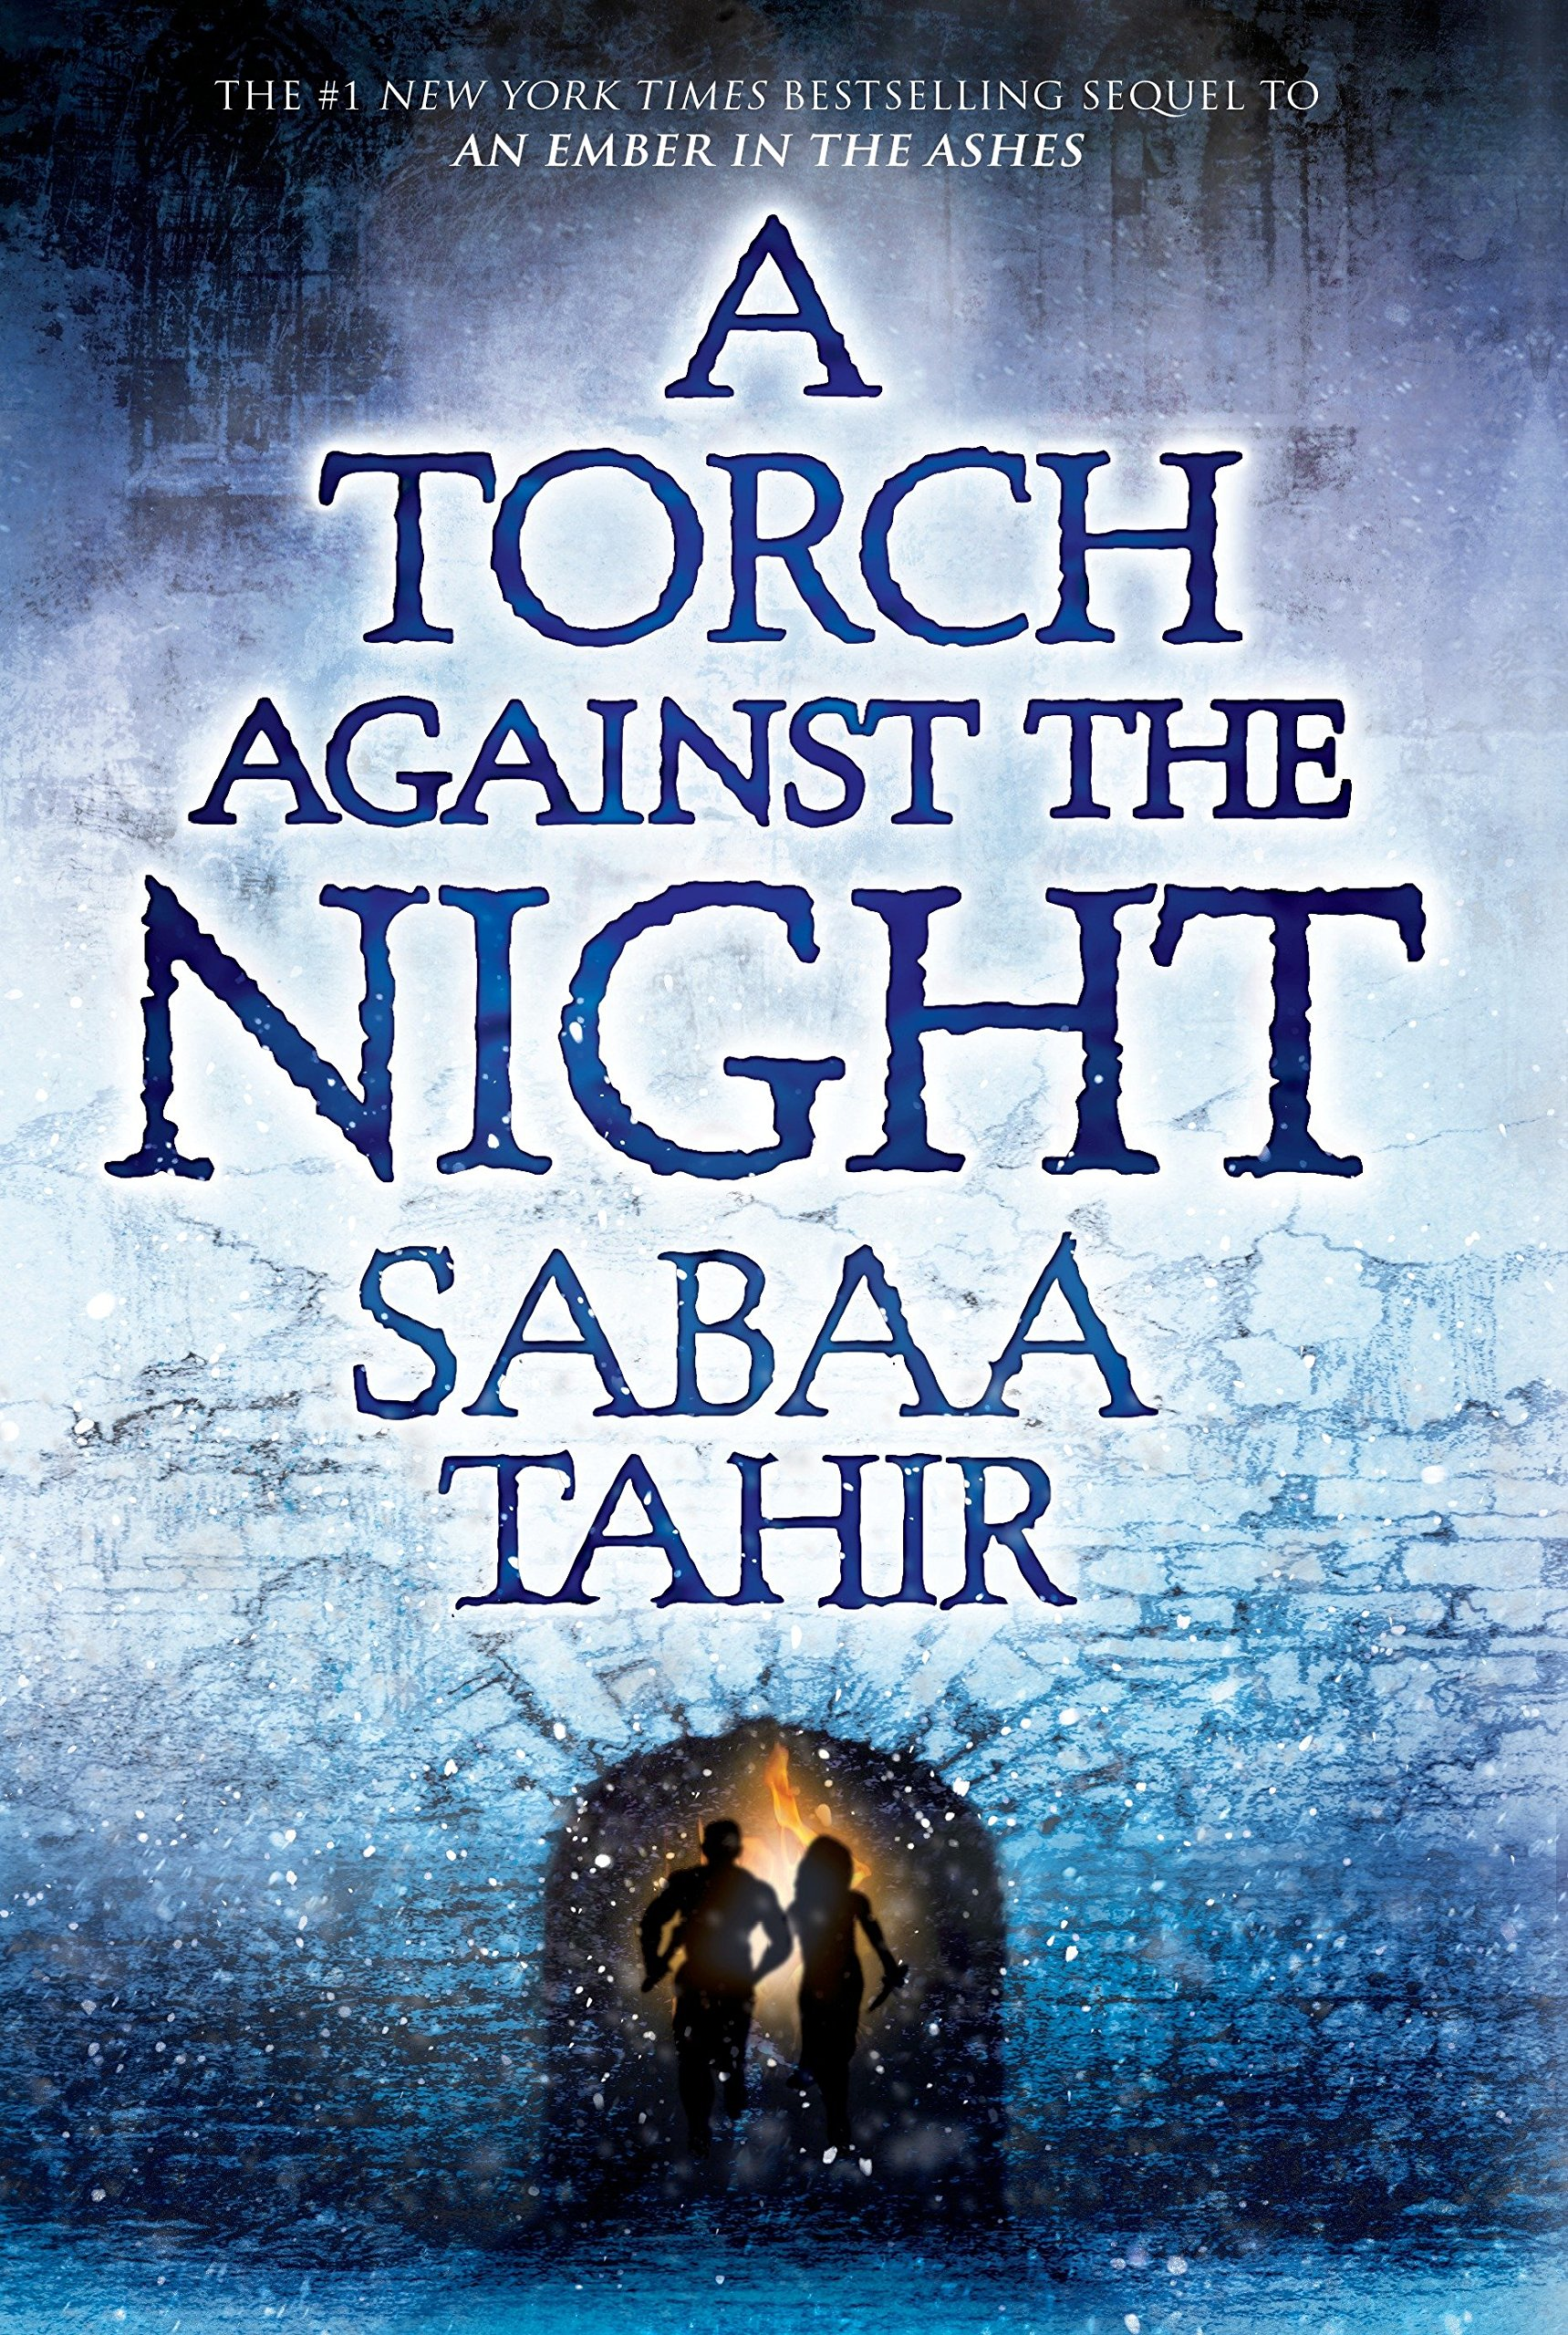 Amazon.com: A Torch Against the Night (An Ember in the Ashes ...